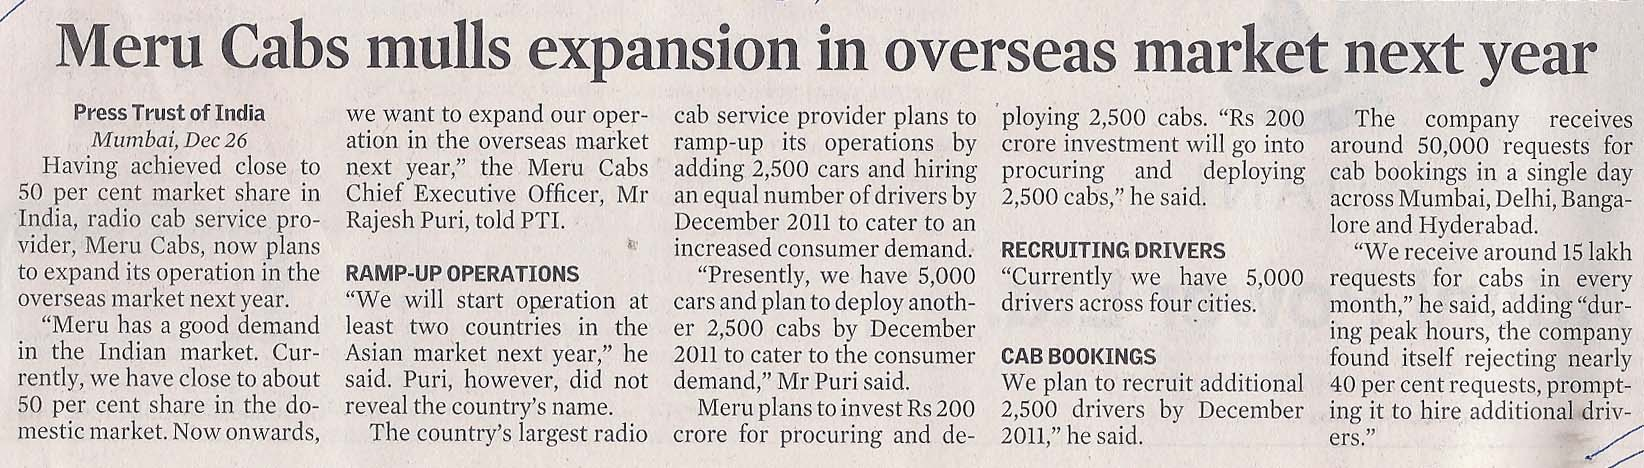 The Hindu Business Line - 27 Dec 10 - Pg 13.jpg